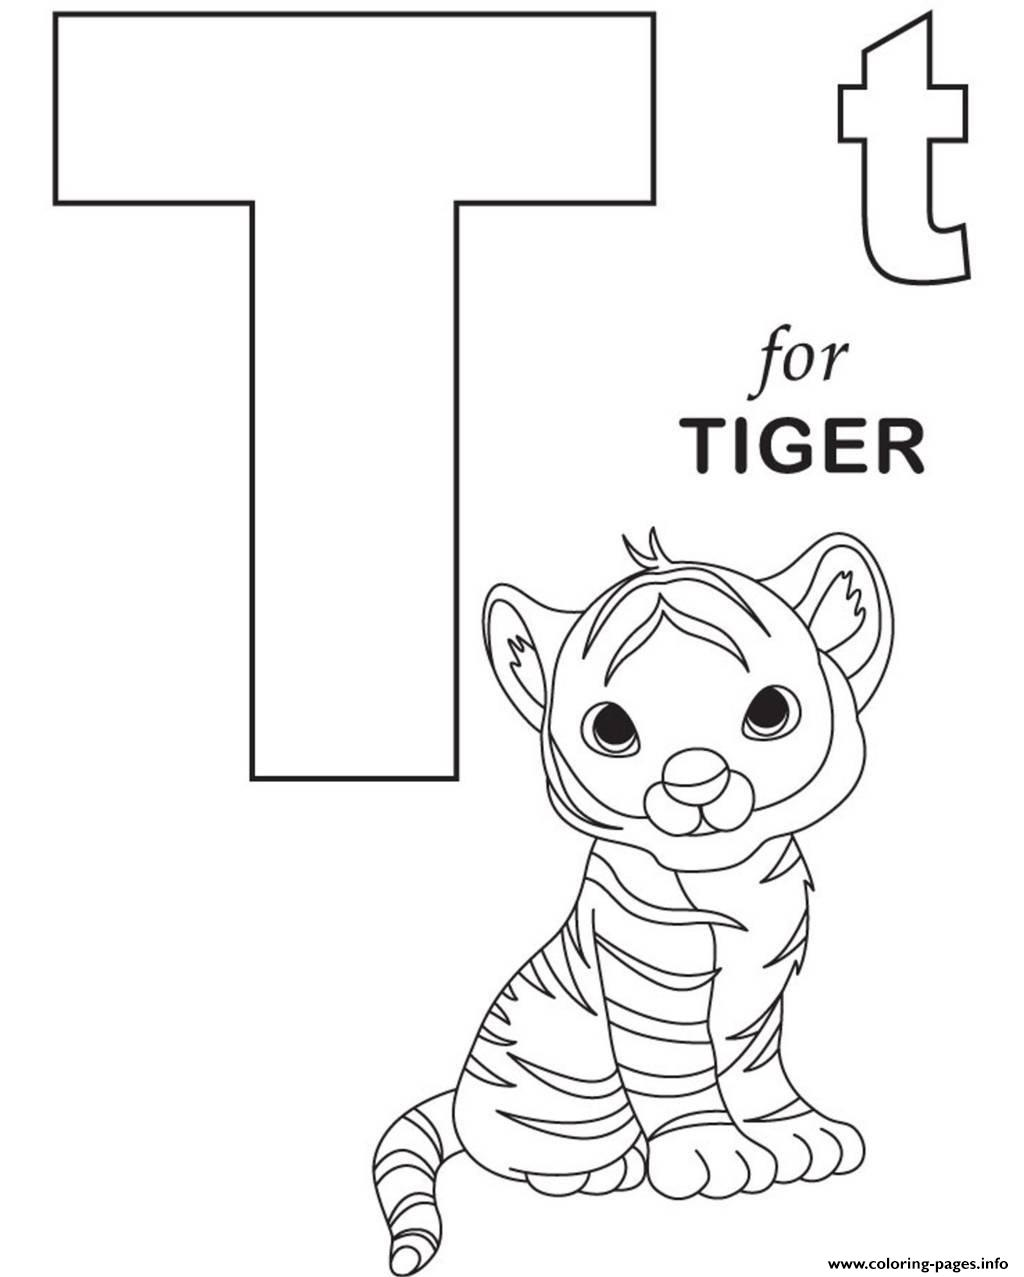 free online alphabet coloring pages | Little Tiger Alphabet 05e9 Coloring Pages Printable